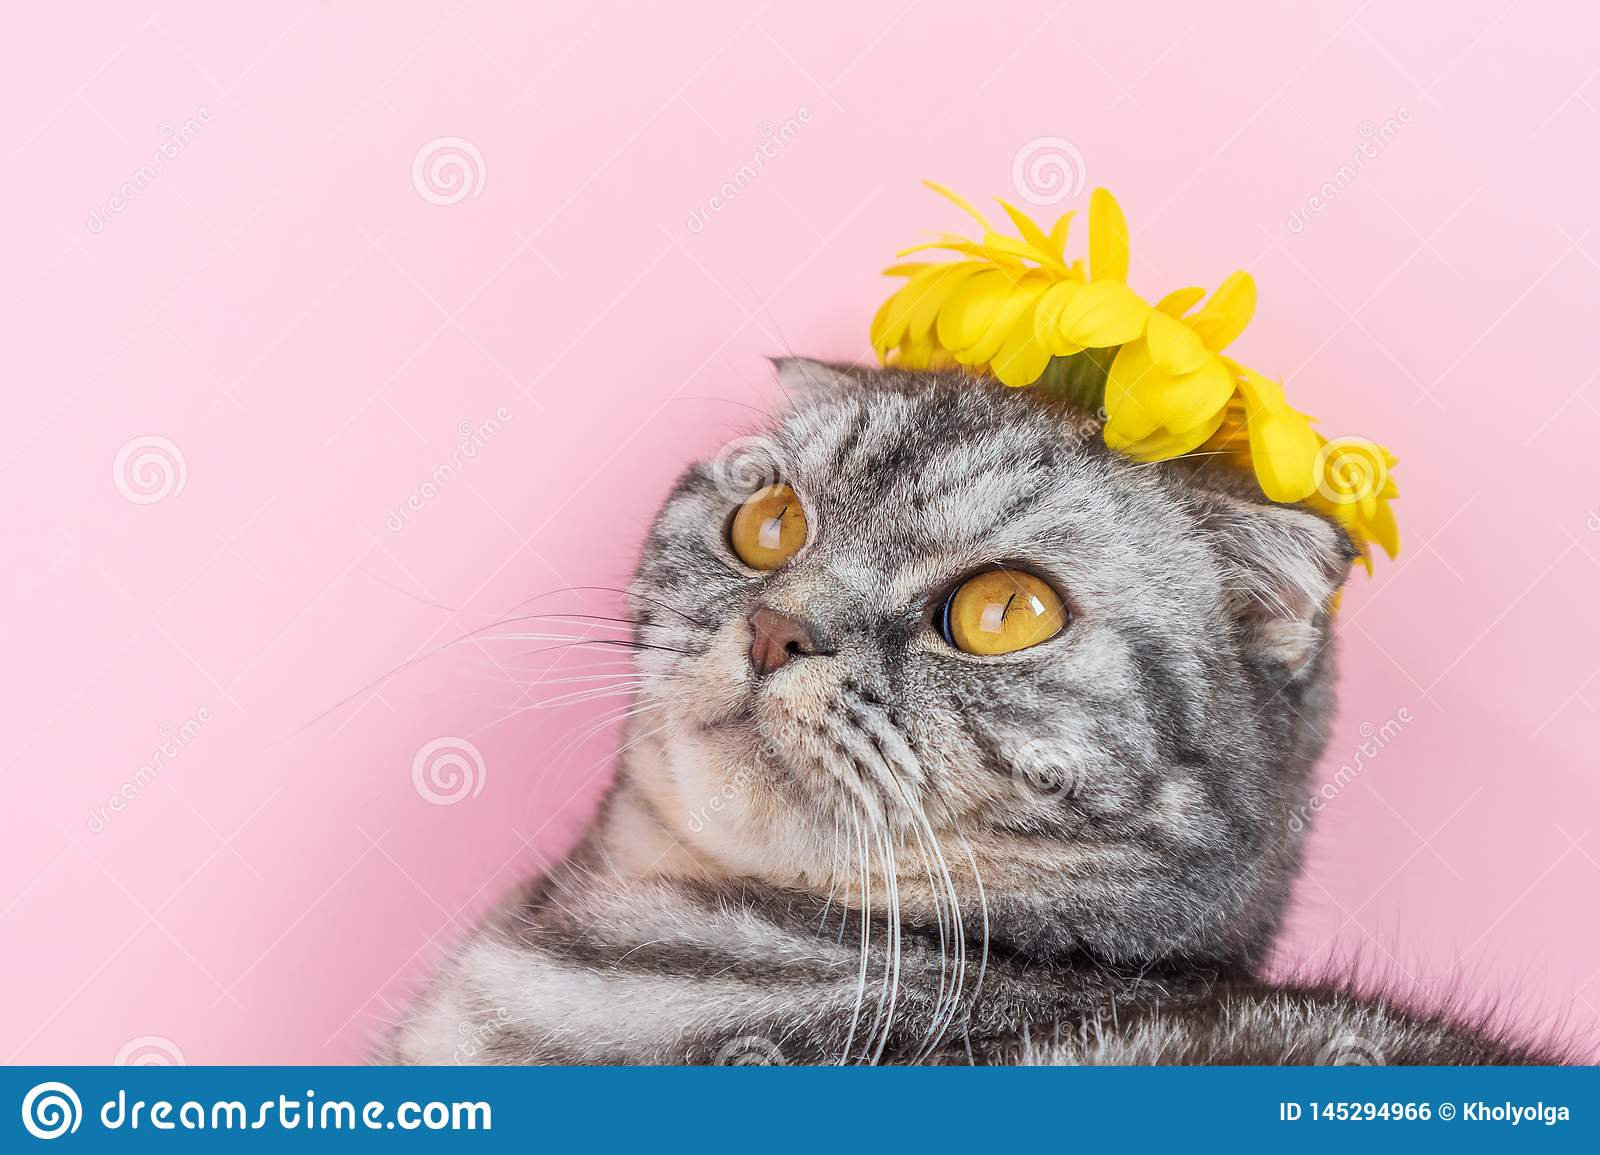 Gray cat breed Scottish Fold close-up with a yellow flower